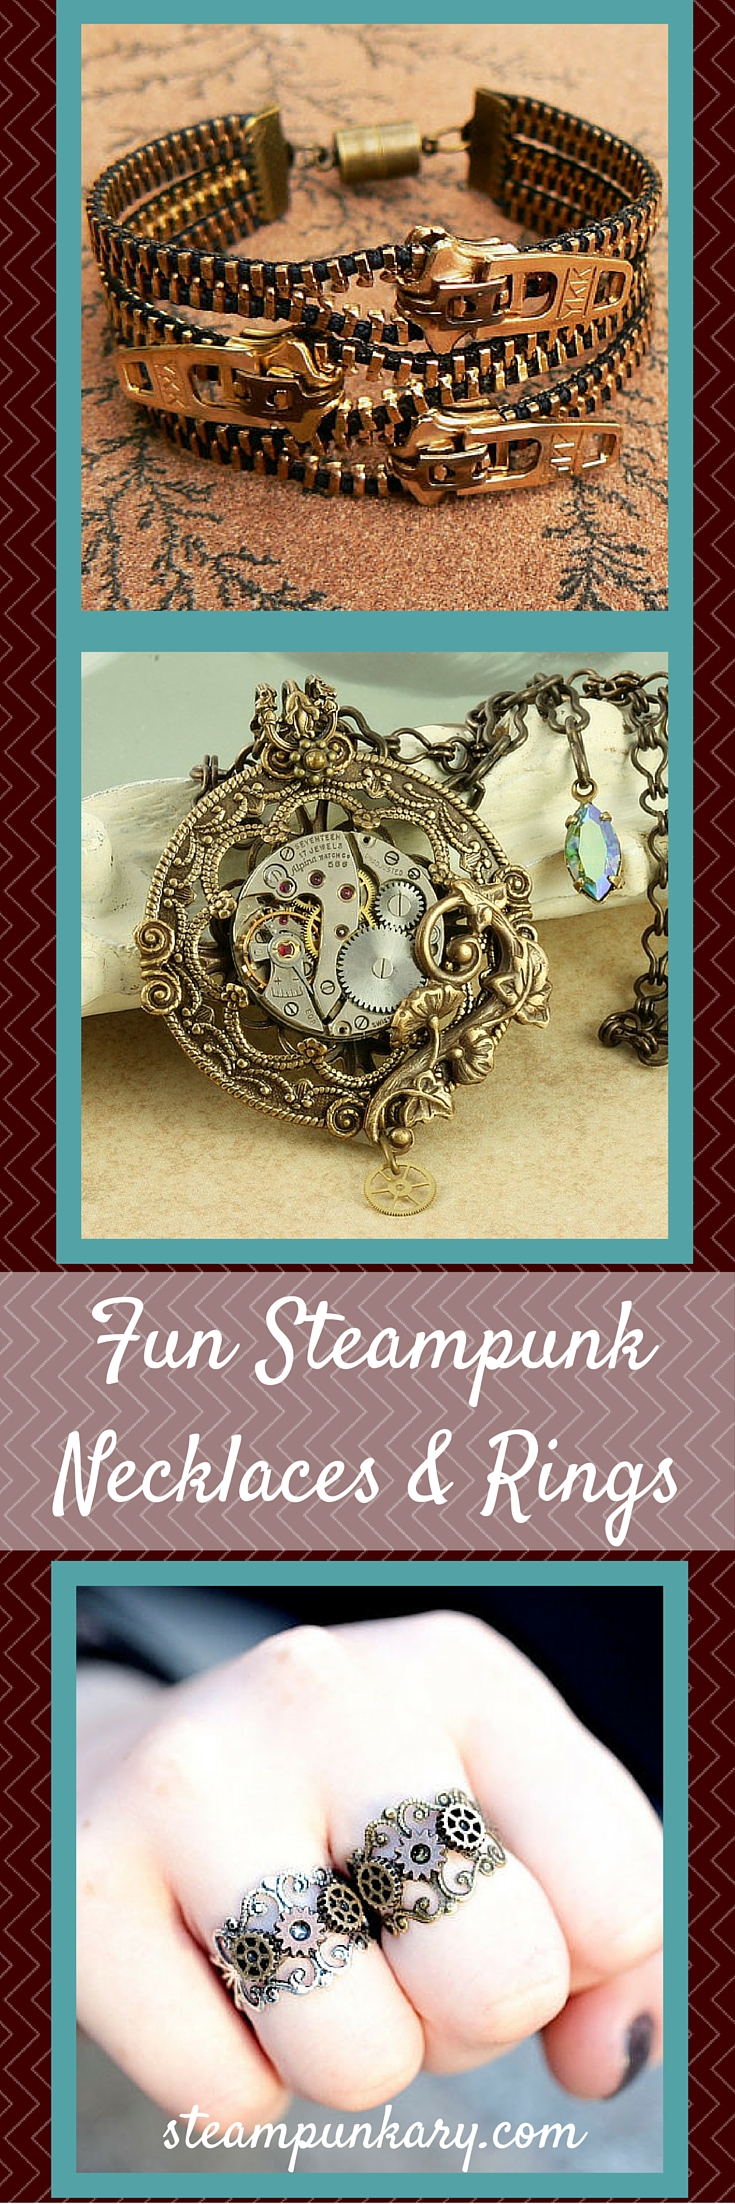 Fun Steampunk Necklaces & Rings